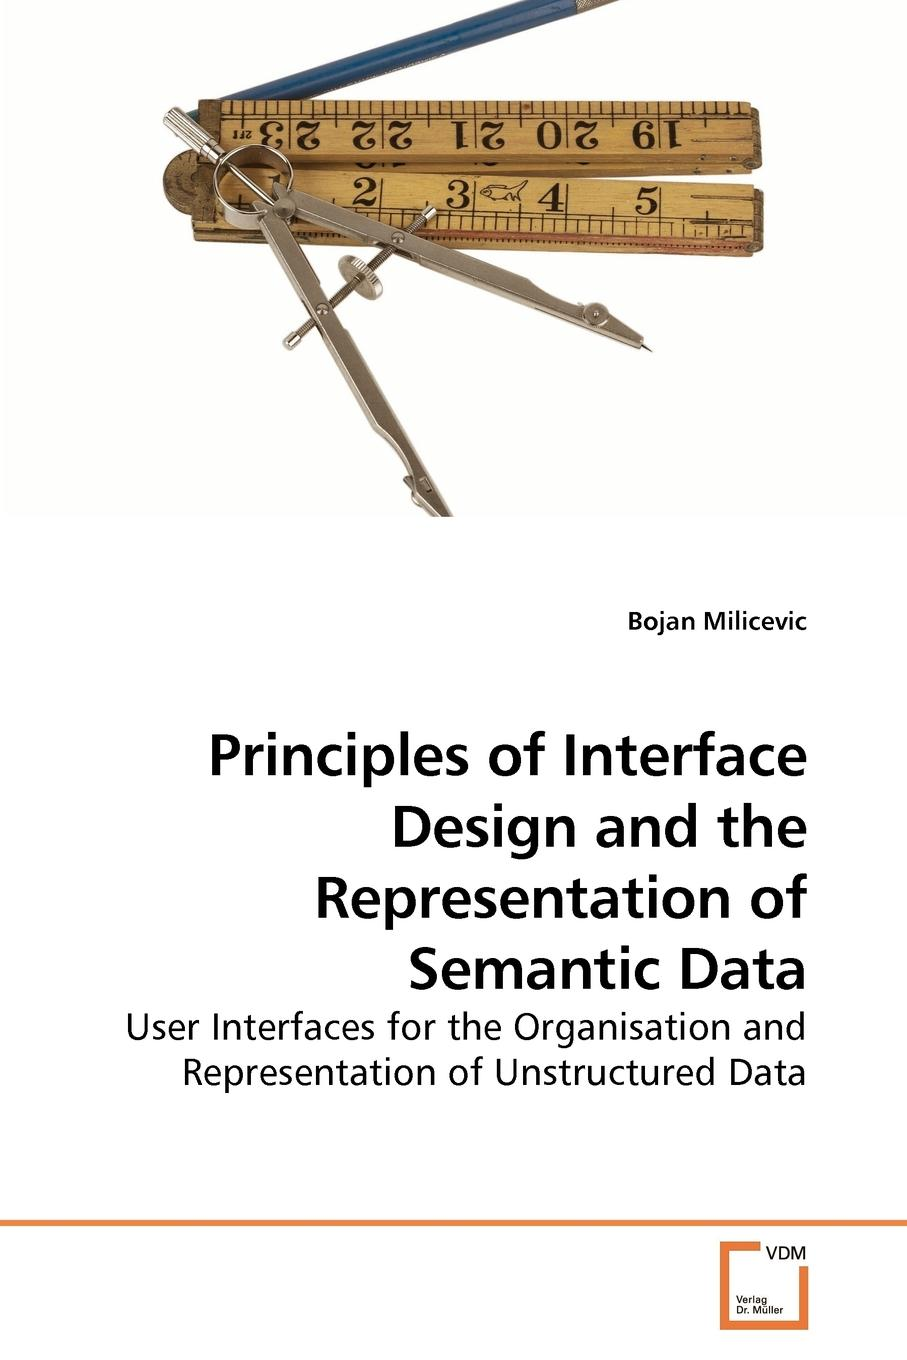 Bojan Milicevic Principles of Interface Design and the Representation of Semantic Data недорого